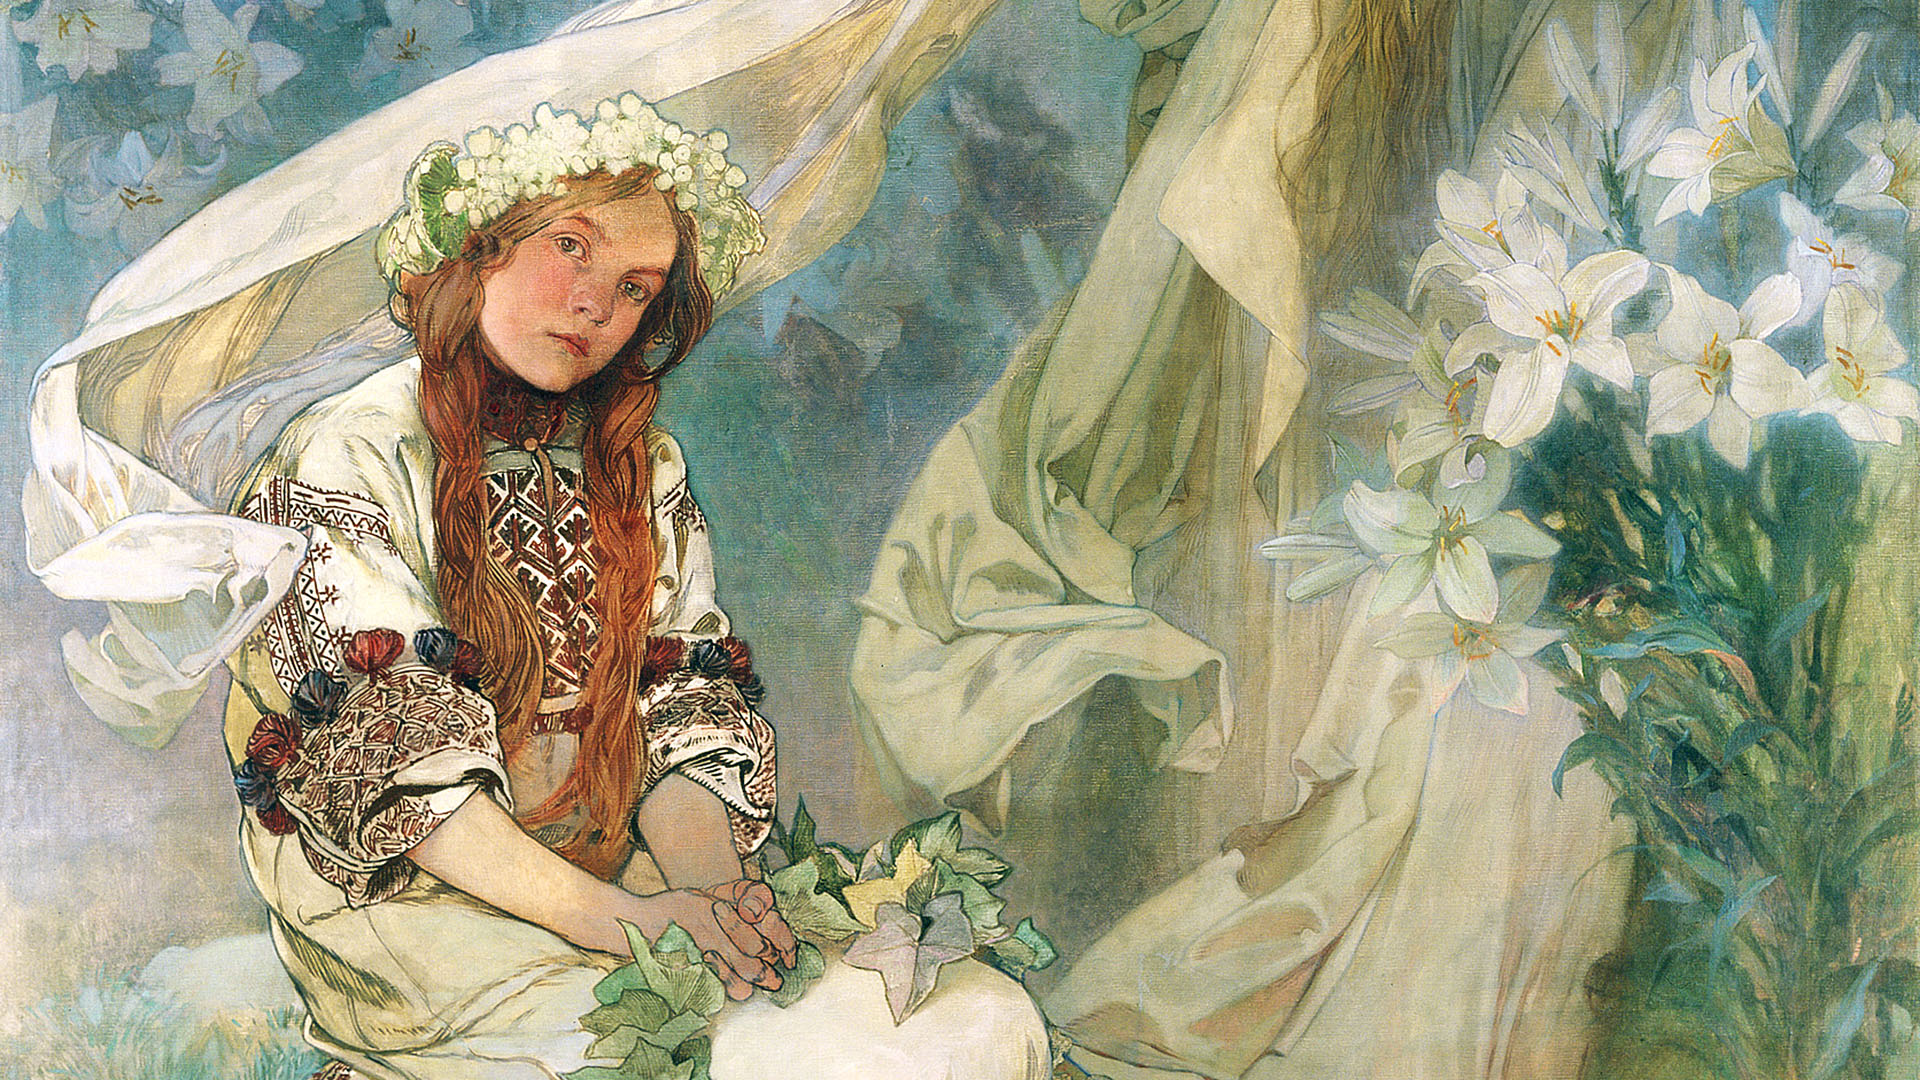 Alphonse Mucha - Madonna of the Lilies 1920x1080 2